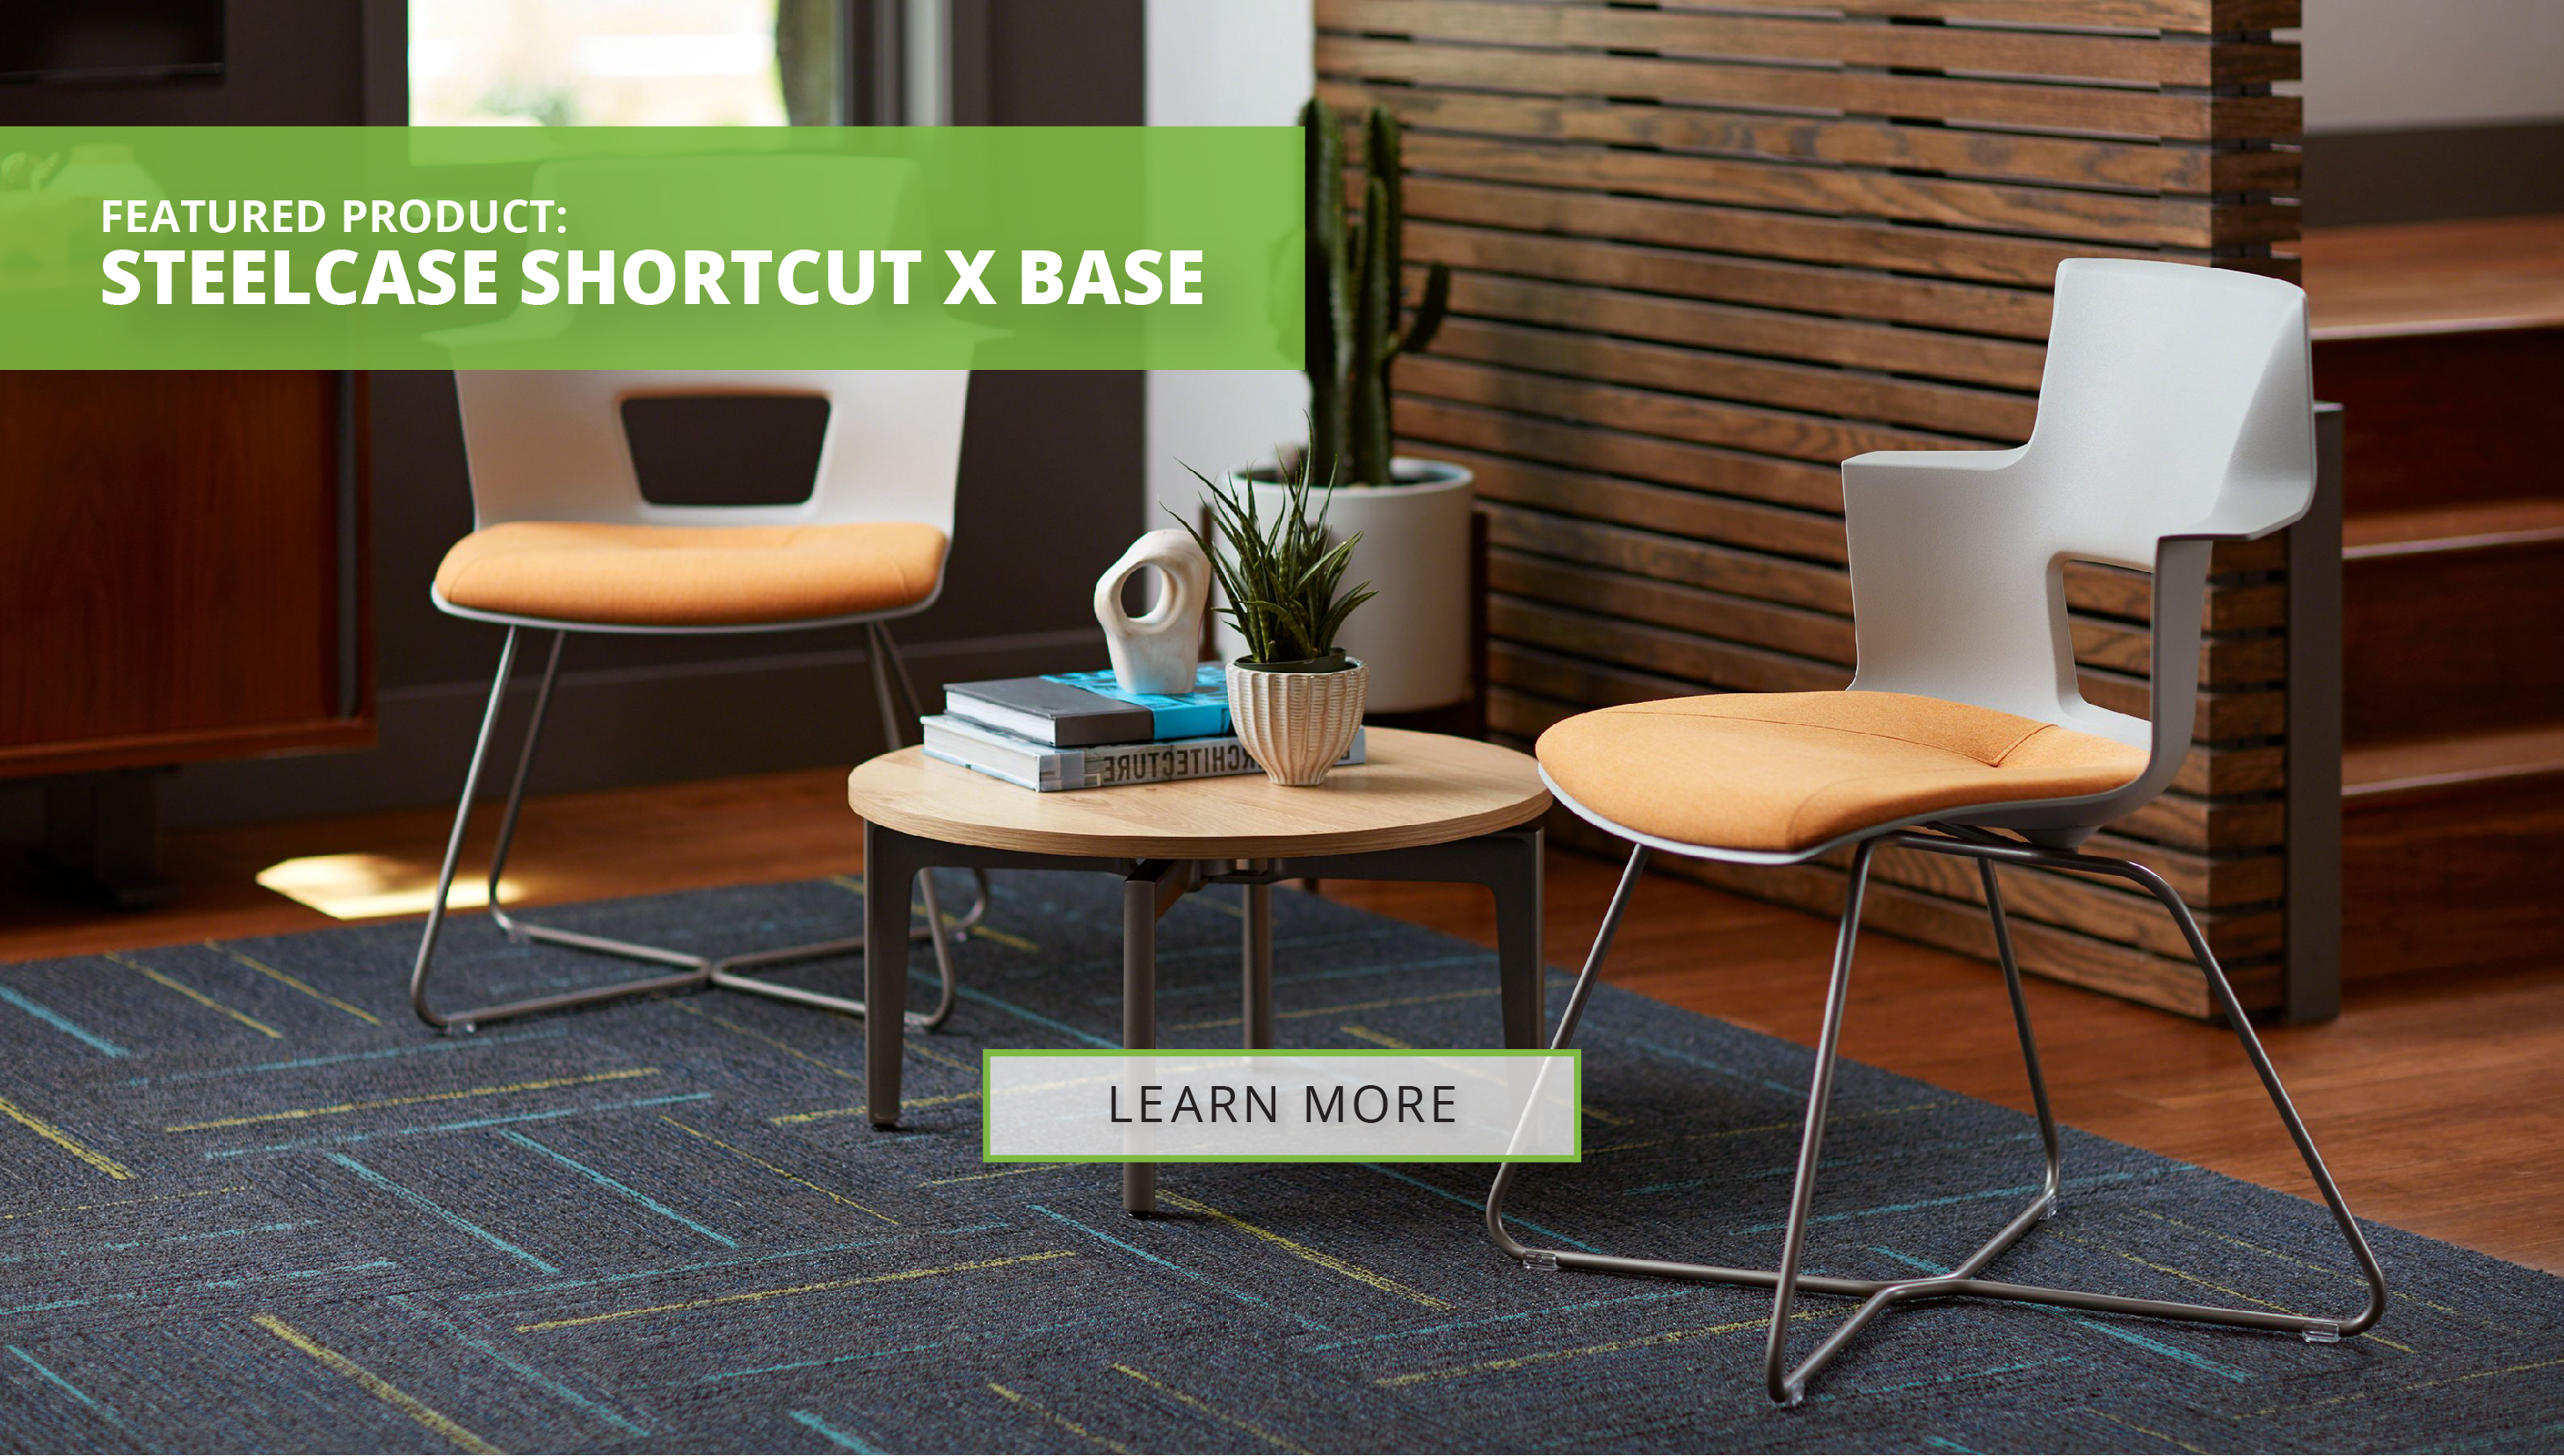 SR_Featured-Products_Shortcut-X_Website-Banner-01